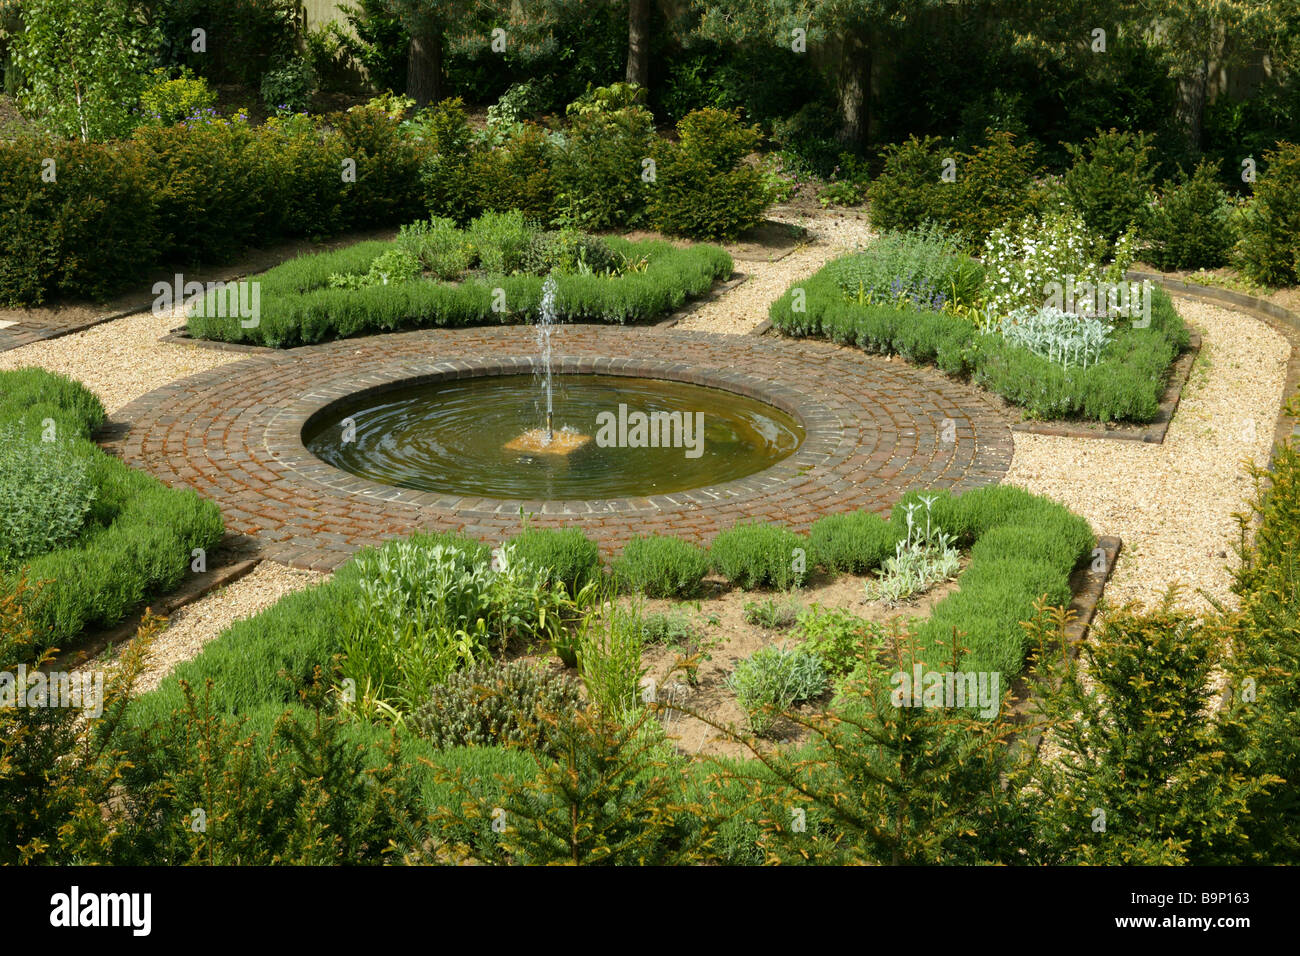 English country garden, landscaped with gravel and borders, and a central water feature of a circular fountain. - Stock Image